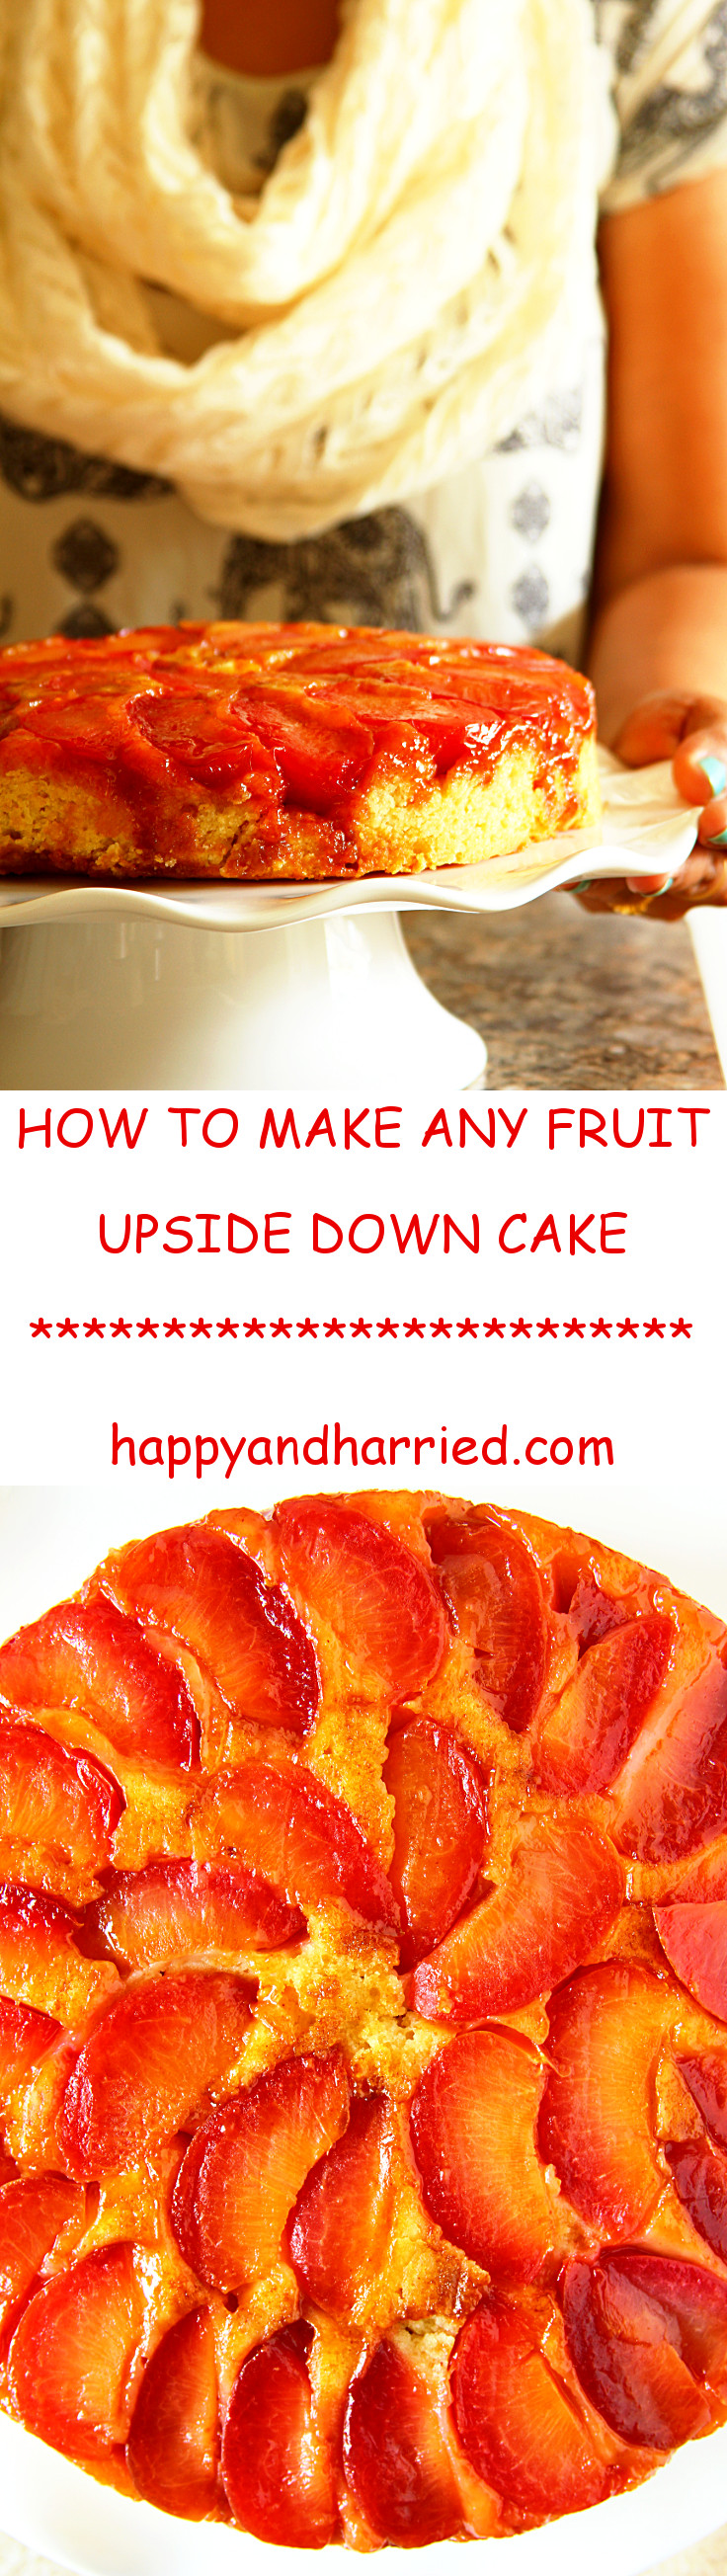 How To Make Any Upside Down Cake